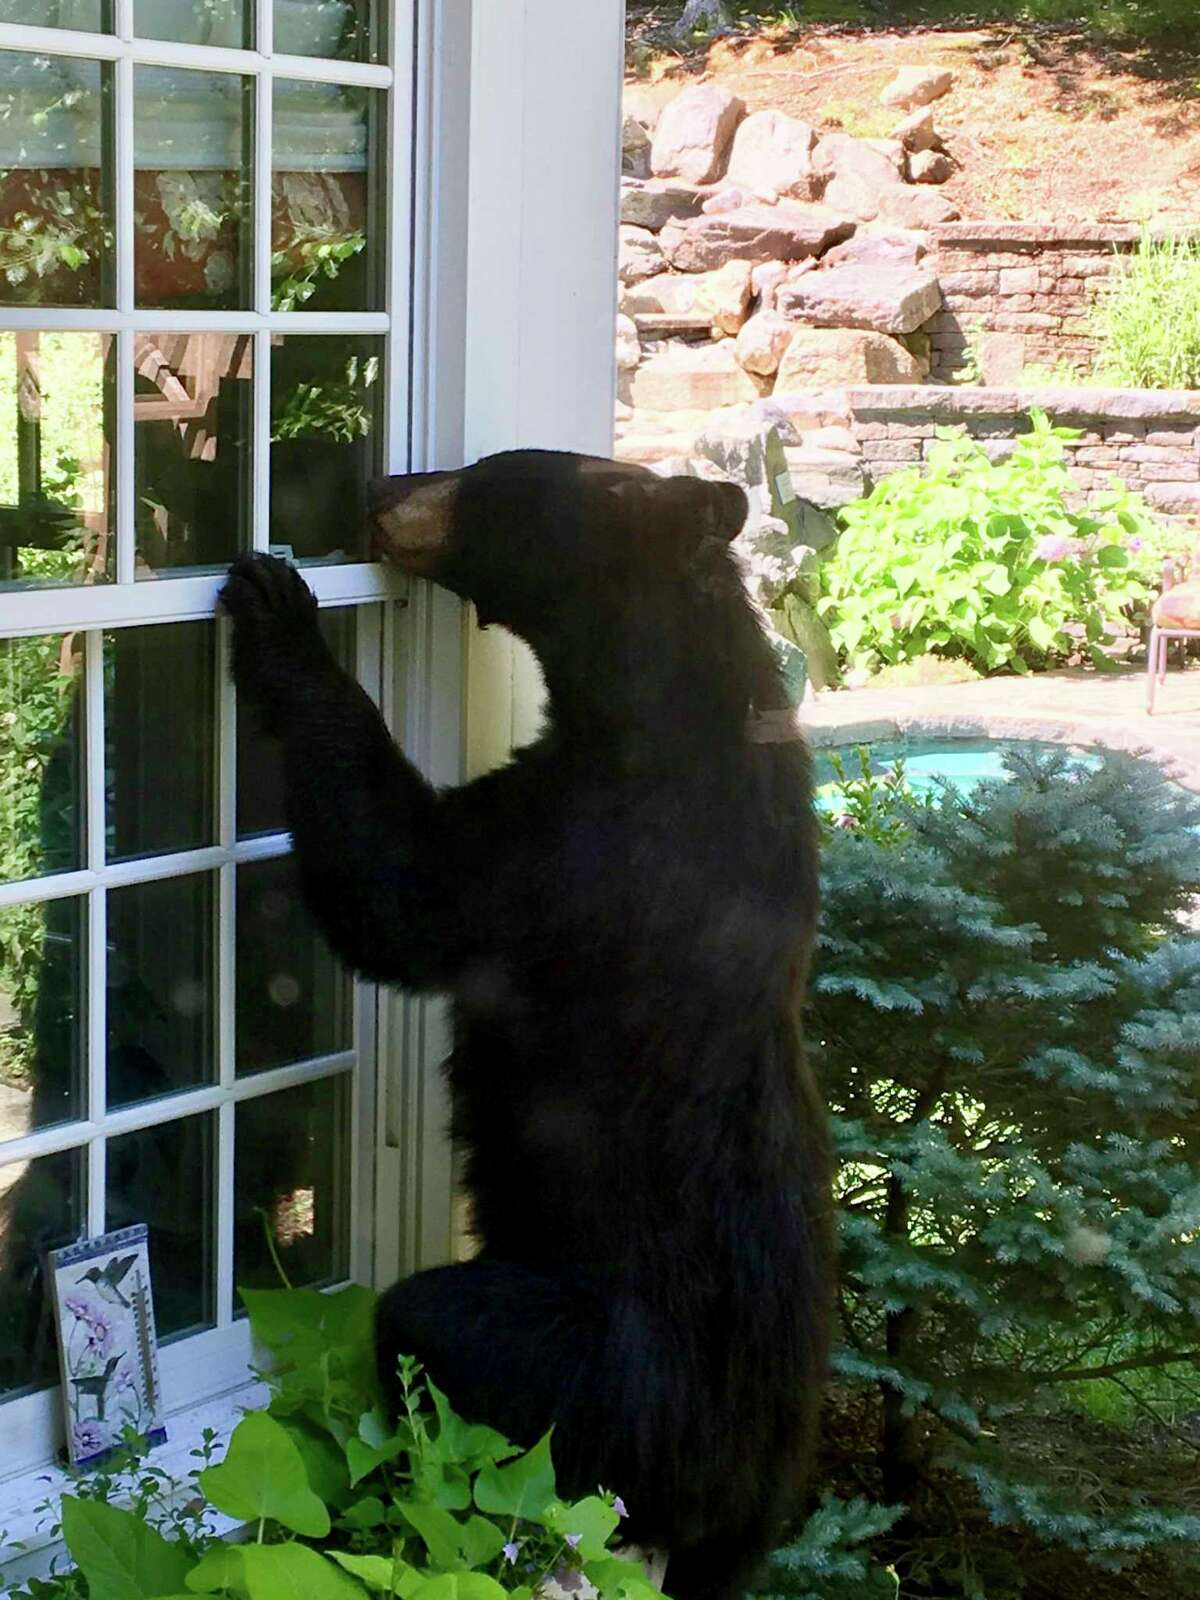 """A black bear explores an Avon, Conn., backyard in this July 28, 2018, file photo. """"Bears that are attracted to homes by easily-accessible foods lose their fear of humans,"""" she said. """"It is important to remember to keep your grill clean and garbage secured and indoors until collection day to avoid giving bears a tempting snack. Bears that are rewarded by easy meals spend more time in neighborhoods and near people, increasing risks to public safety, the likelihood of property damage and the possibility that the bears may be hit and killed by vehicles."""" While there are things that serve as bear attractants, bird feeders and garbage are the most common. Bird feeders should be taken down from April 1 through at least Nov. 30 to ensure they don't attract bears, according to the Wildlife Division. The feeders should also stay down during a mild winter. Even empty bird feeders can draw the attention of a bear. The Wildlife Division recommends residents store garbage bins in in a closed garage or shed. Trash haulers also offer bear resistant bins for trash, making it significantly more difficult for a bear to get access to the garbage inside."""